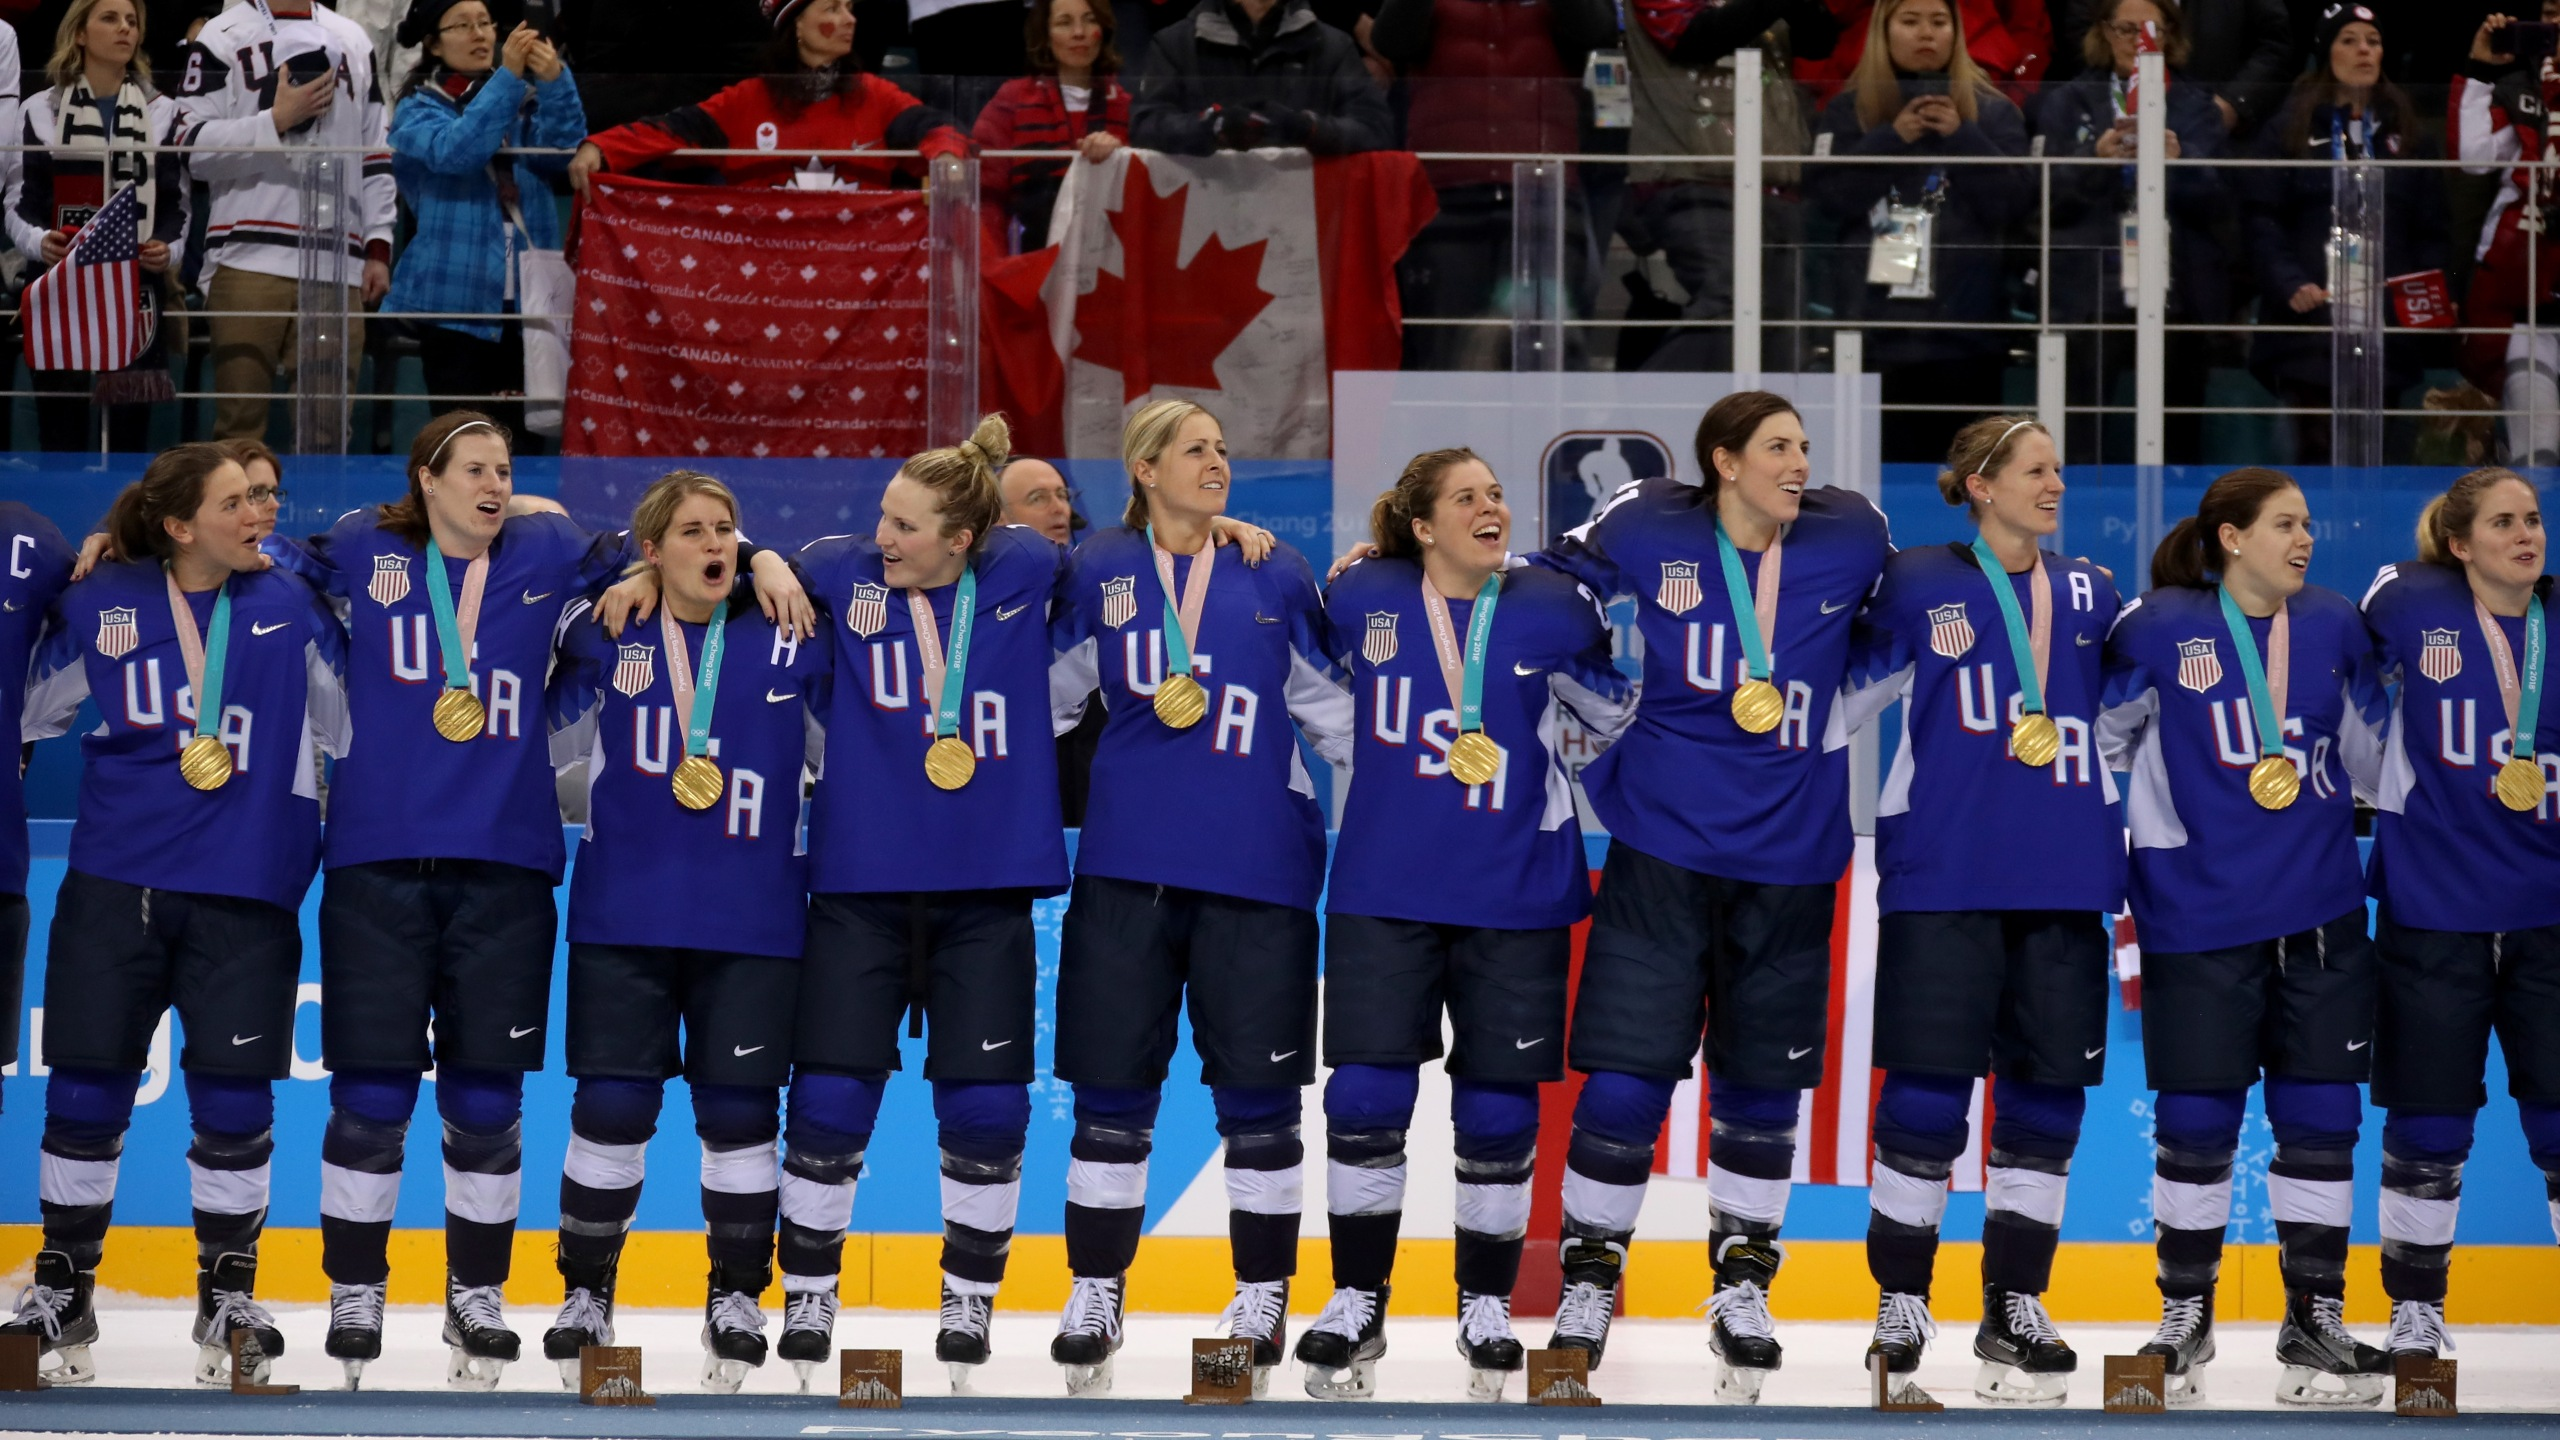 Us Beats Canada For Gold In Women S Hockey Game Fox 59